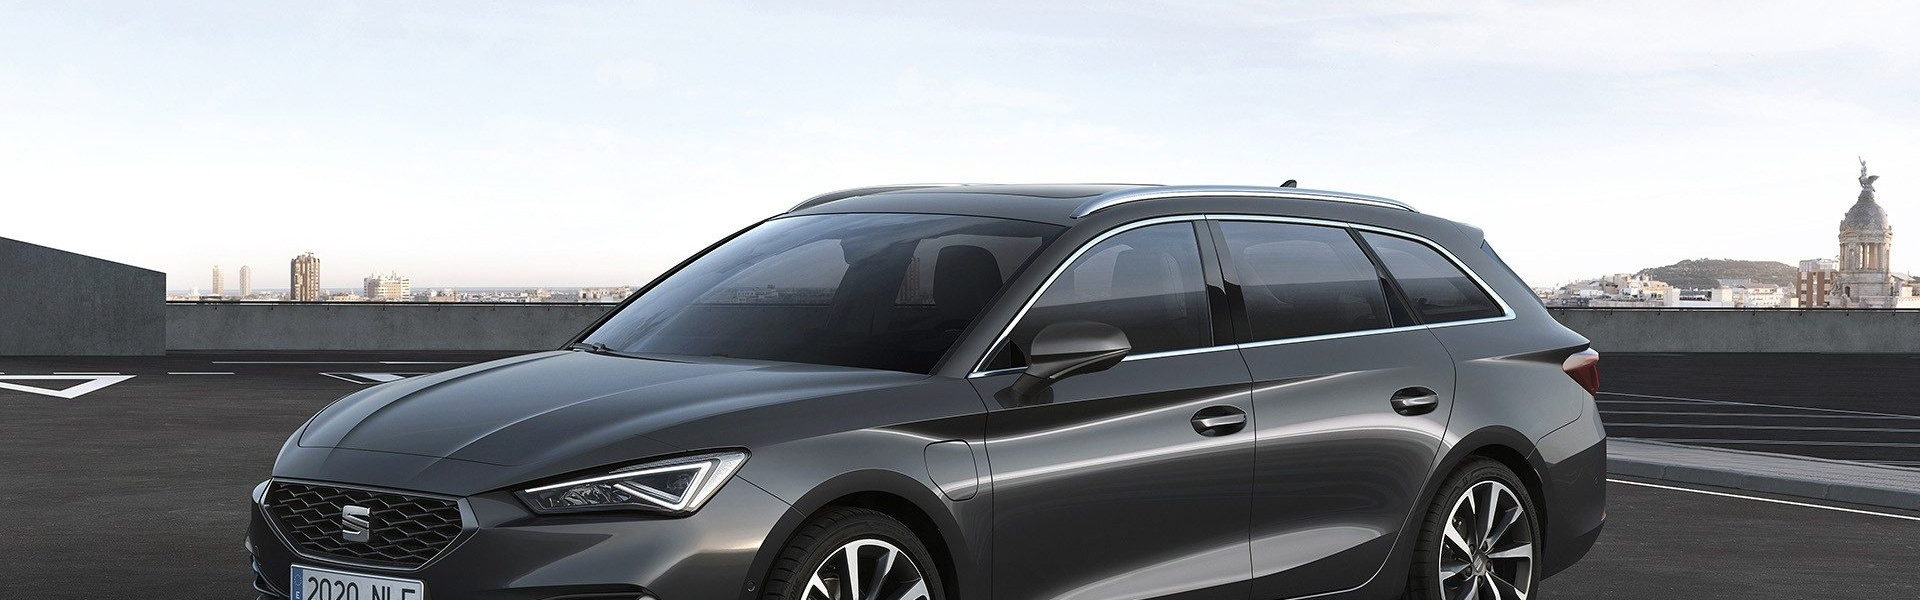 2020-Seat-Leon-Hatch-Estate-12.jpg